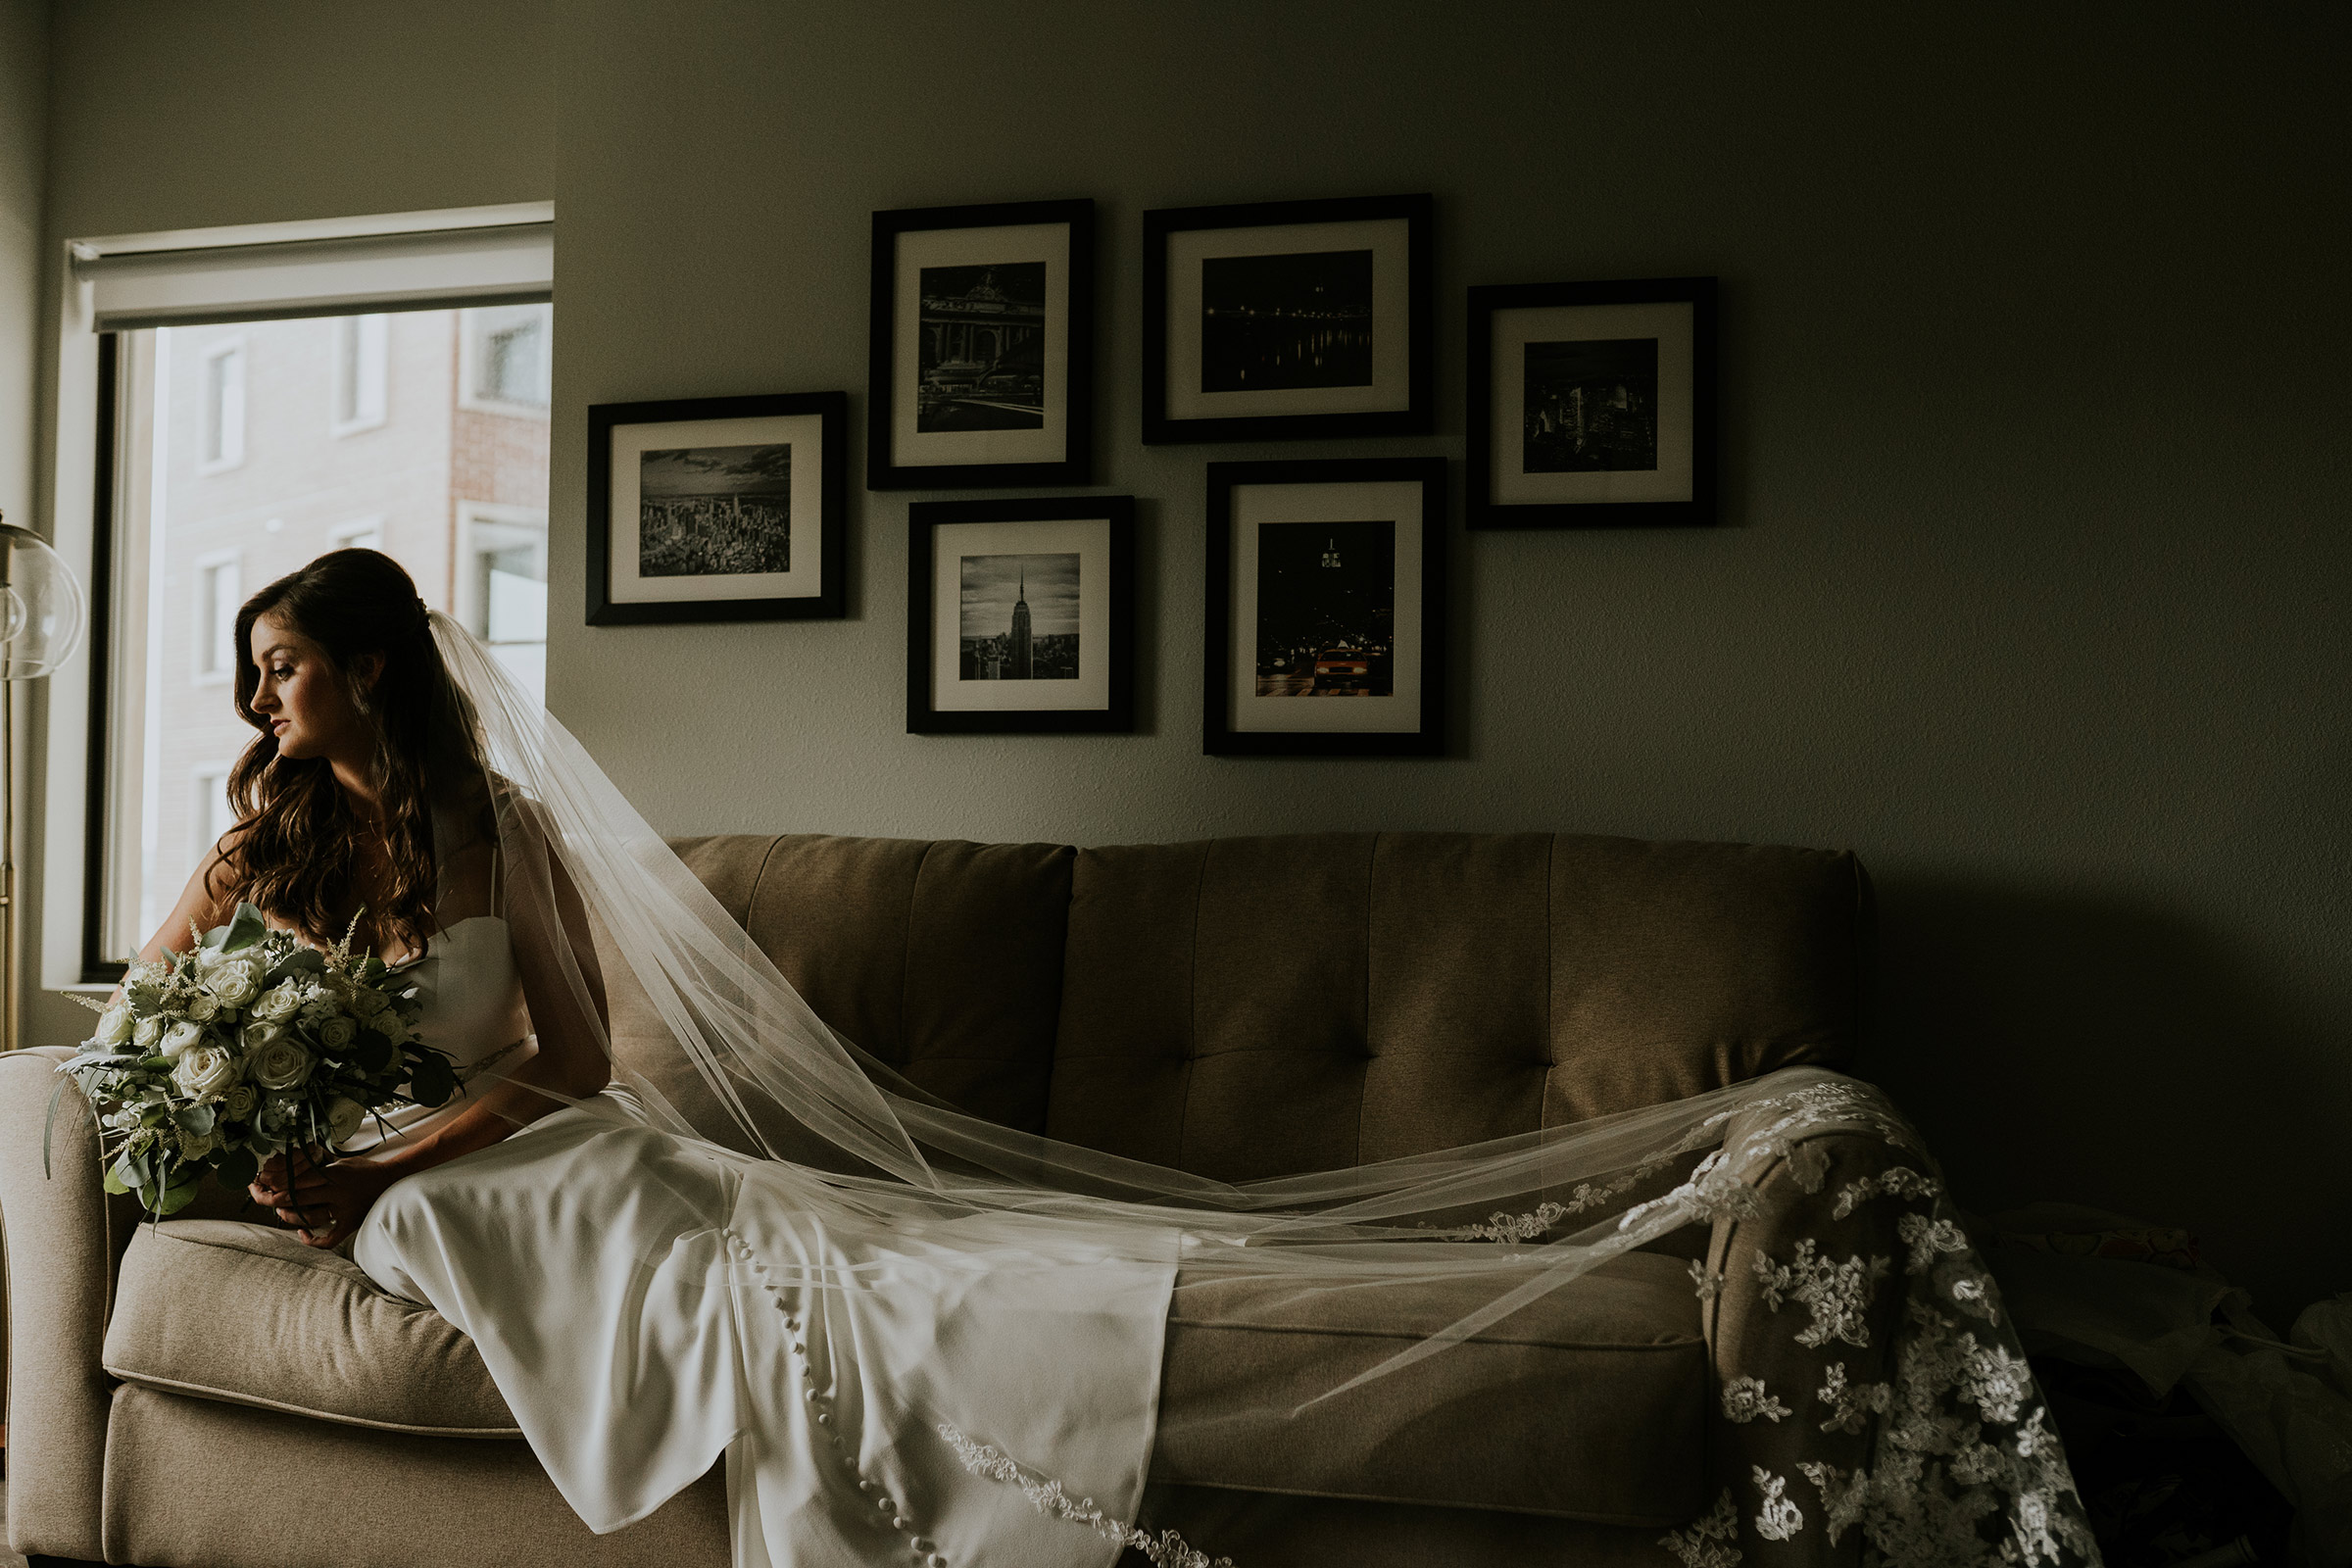 mr-mrs-hull-bride-posing-on-couch-desmoines-iowa-raelyn-ramey-photography-81.jpg